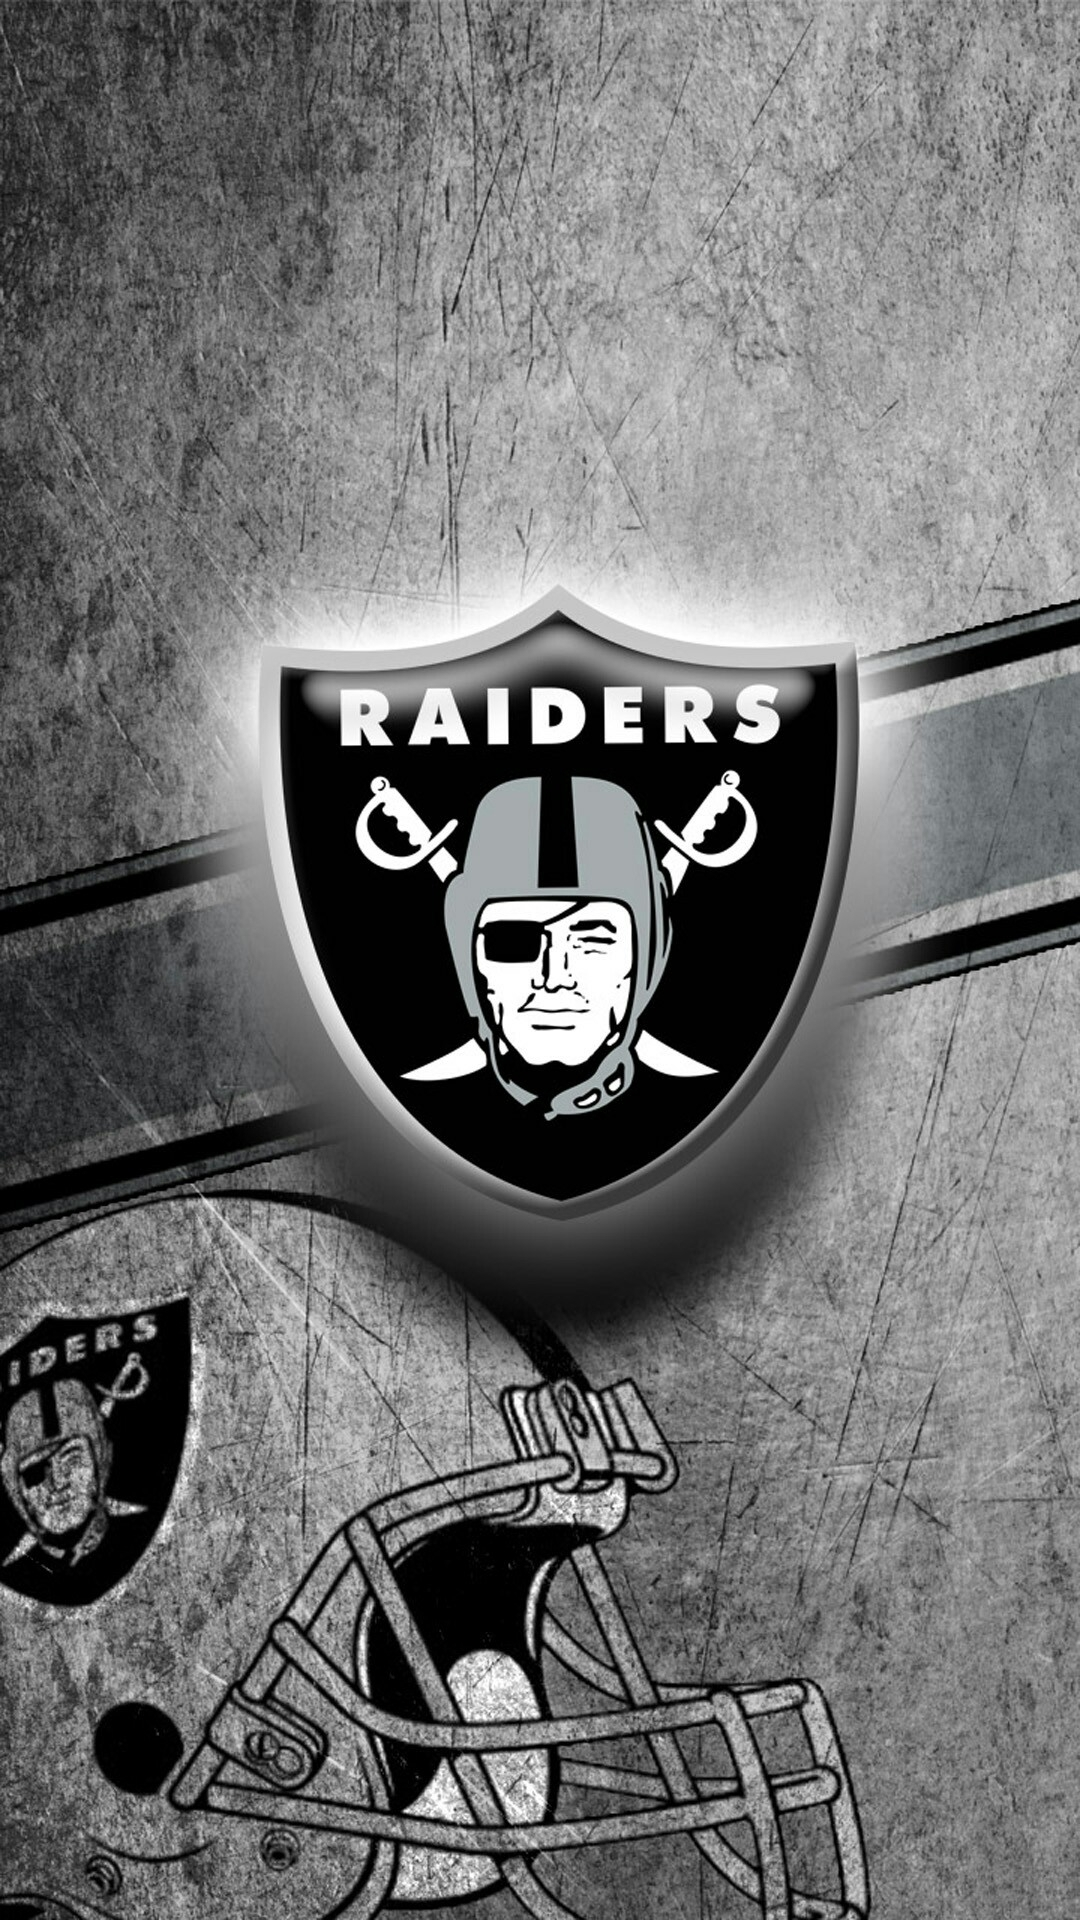 download free raiders wallpapers for your mobile phone| my team